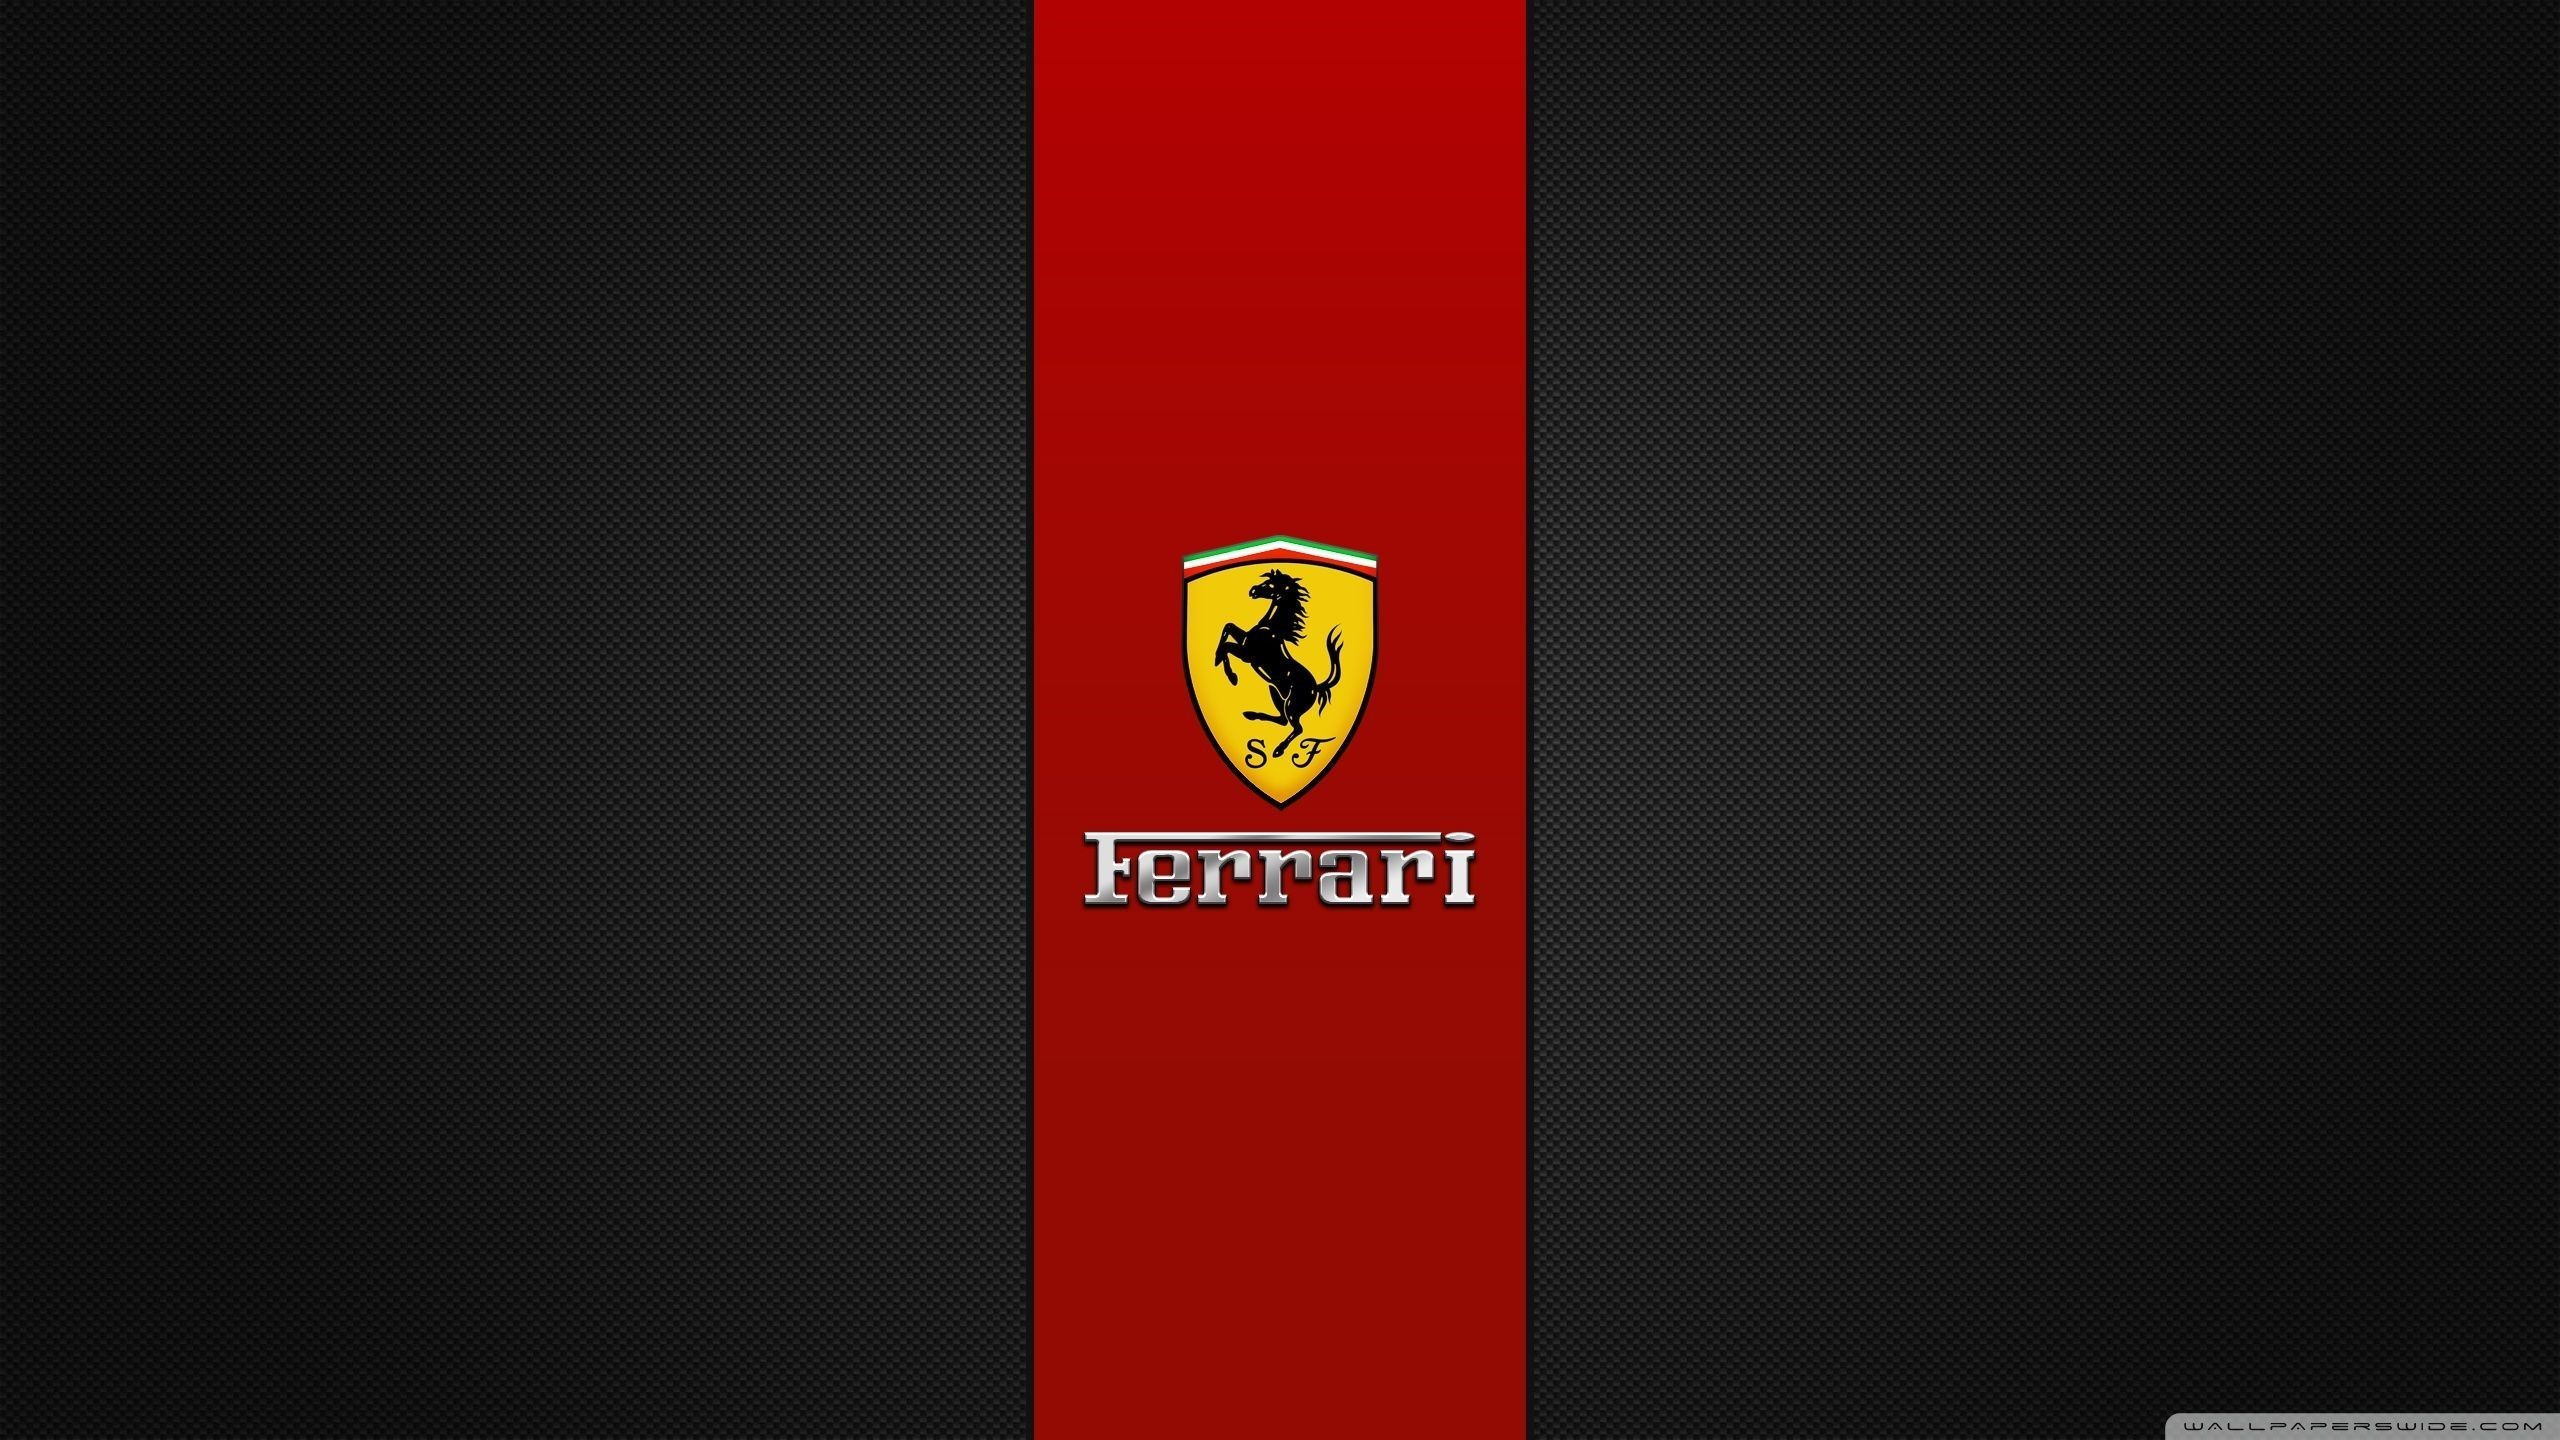 Ferrari Android Wallpapers